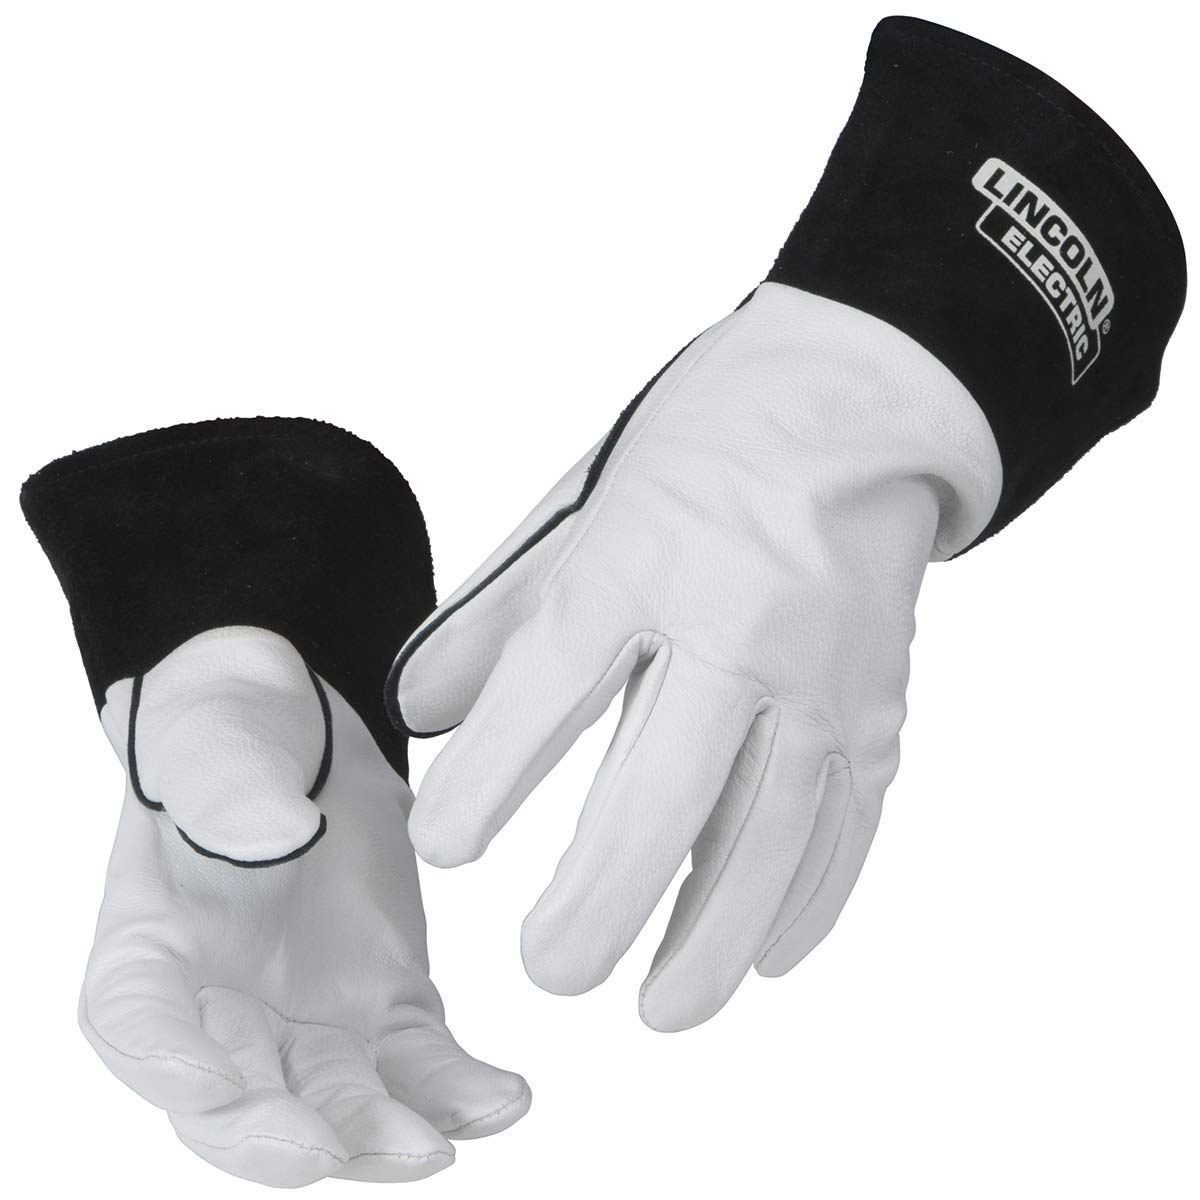 Lincoln Electric Grain Leather TIG Welding Gloves | High Dexterity |  Large | K2981-L LINCOLN - K2981-L